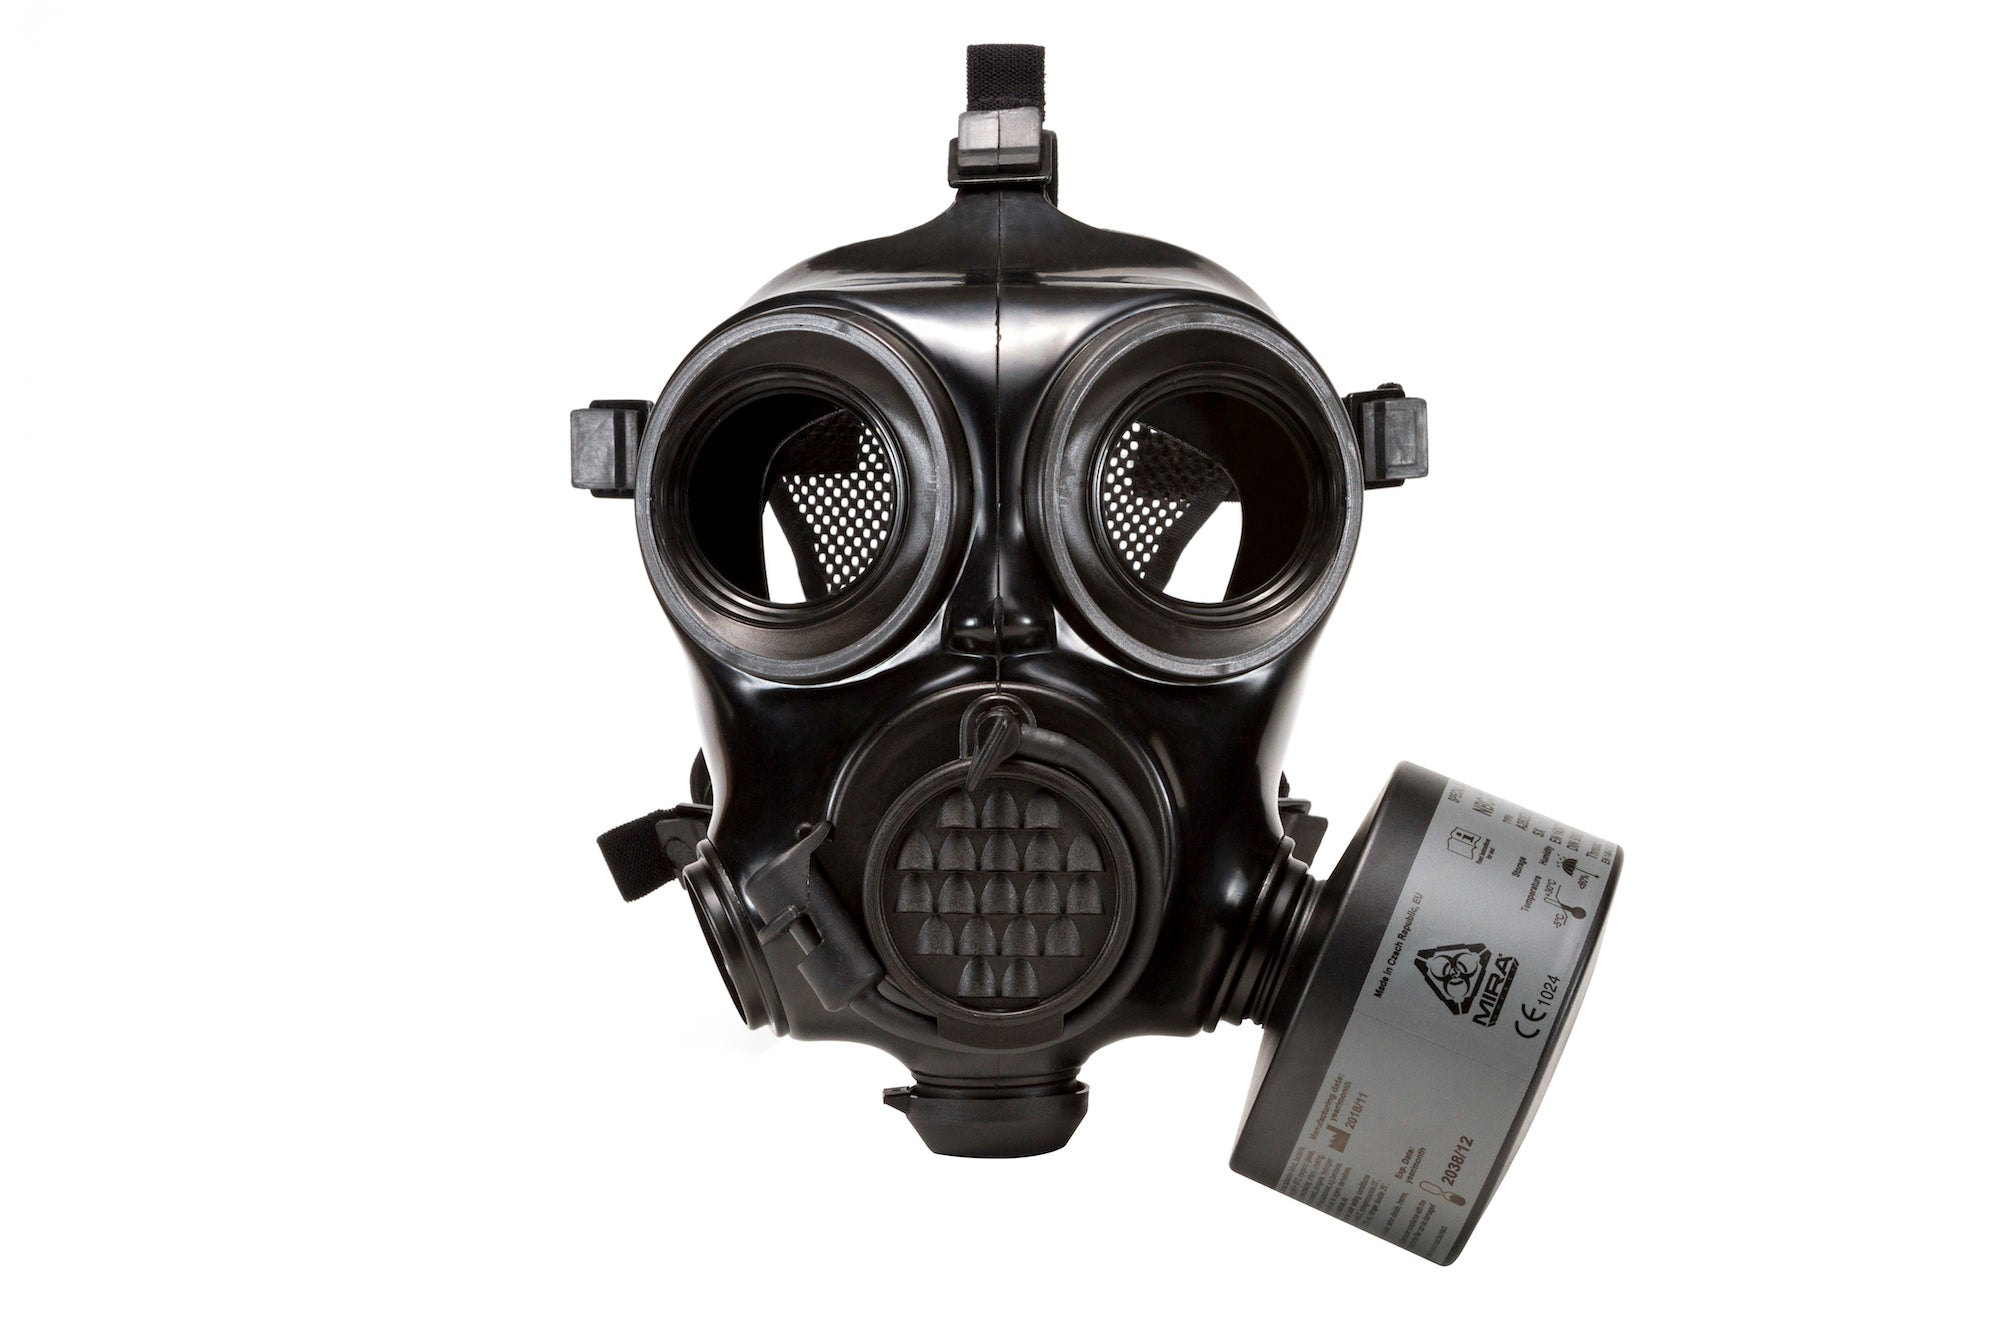 Front view of the CM-7M Military Gas Mask with CBRN filter